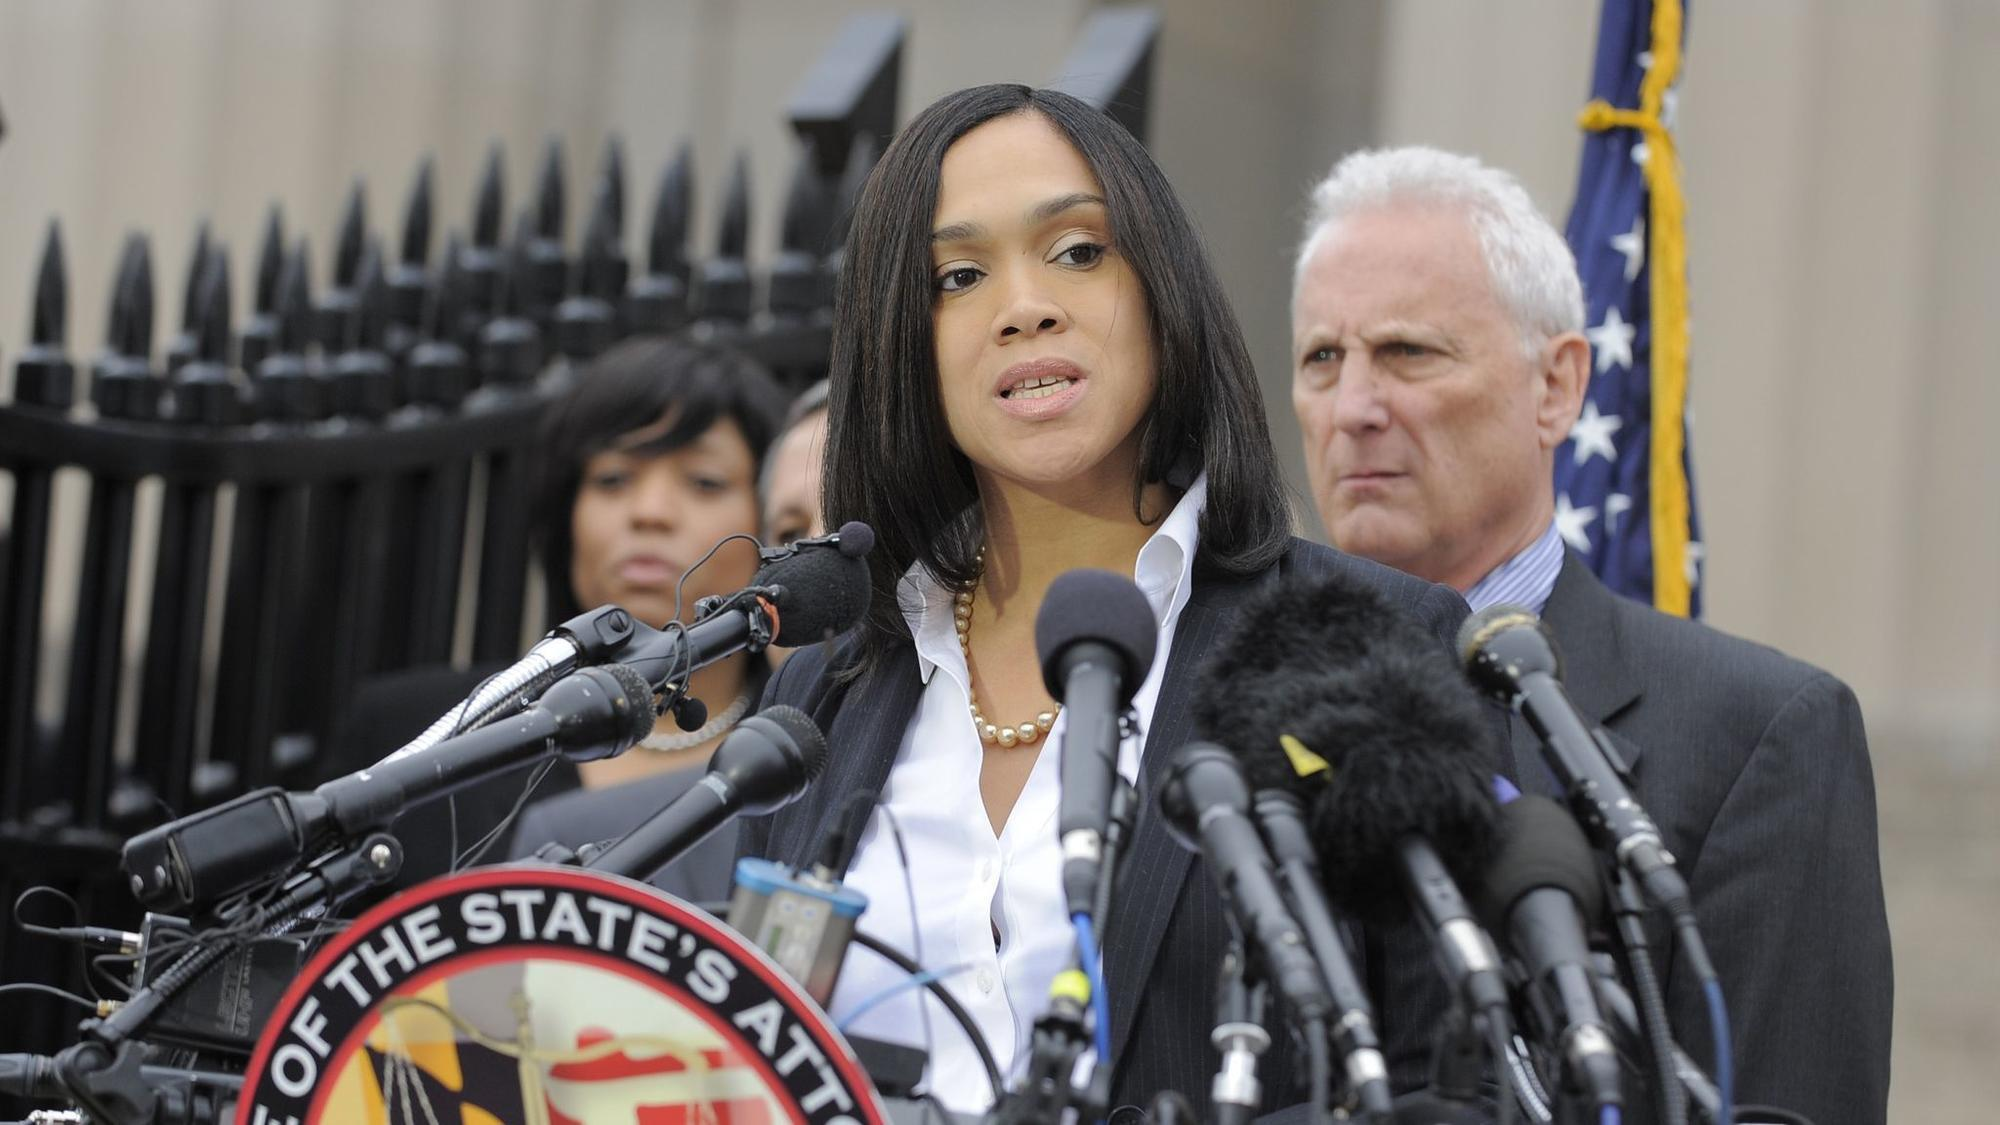 baltimoresun.com - Kevin Rector - Supreme Court denies Baltimore officers' appeal in case against Marilyn Mosby